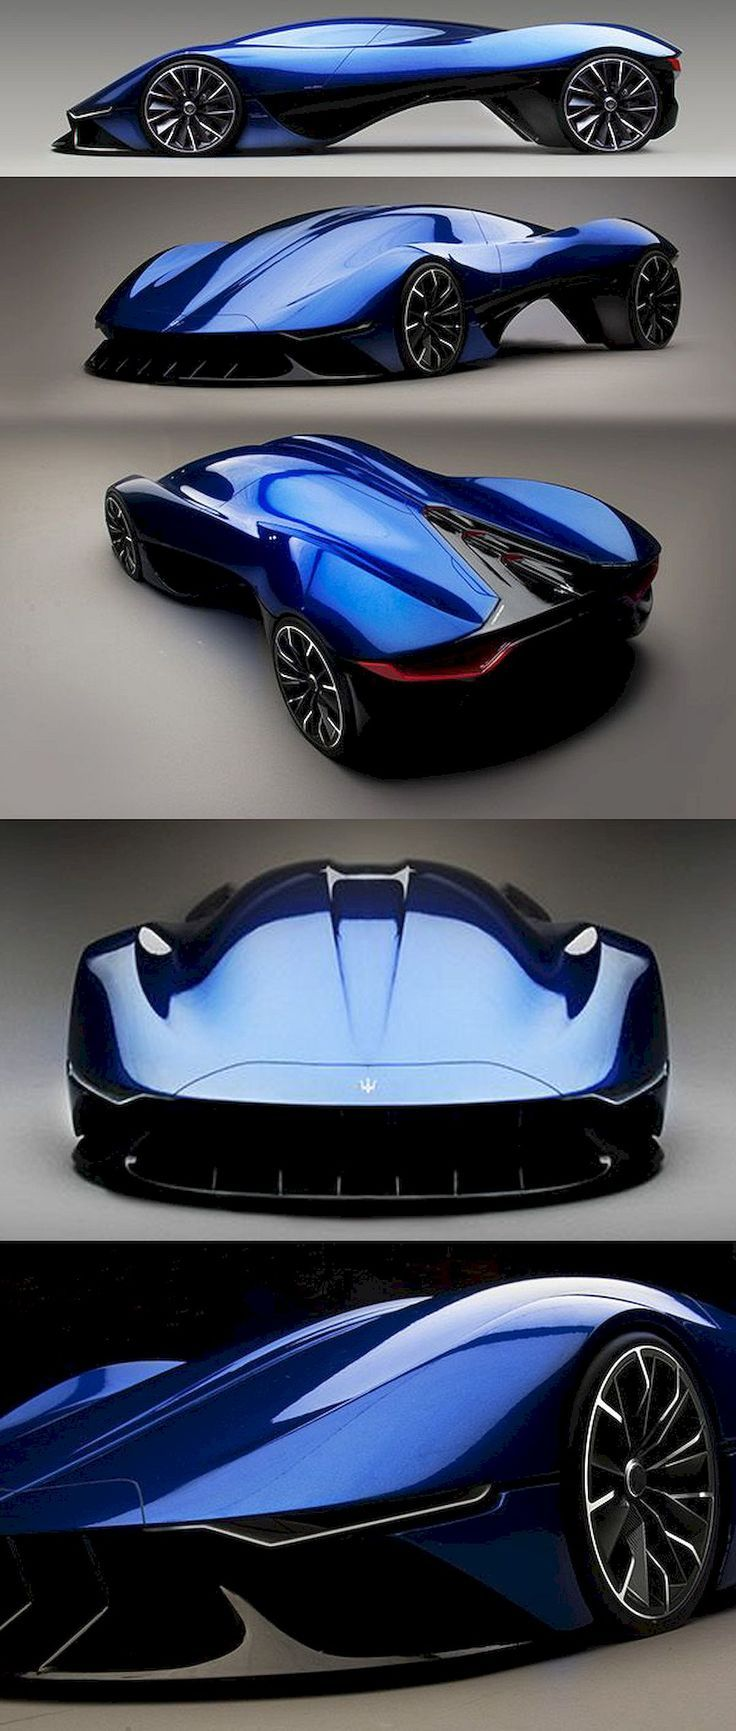 4 Jaw Dropping Futuristic Cars You Can See Shortly In 2020 Futuristic Cars Design Cool Sports Cars Concept Cars